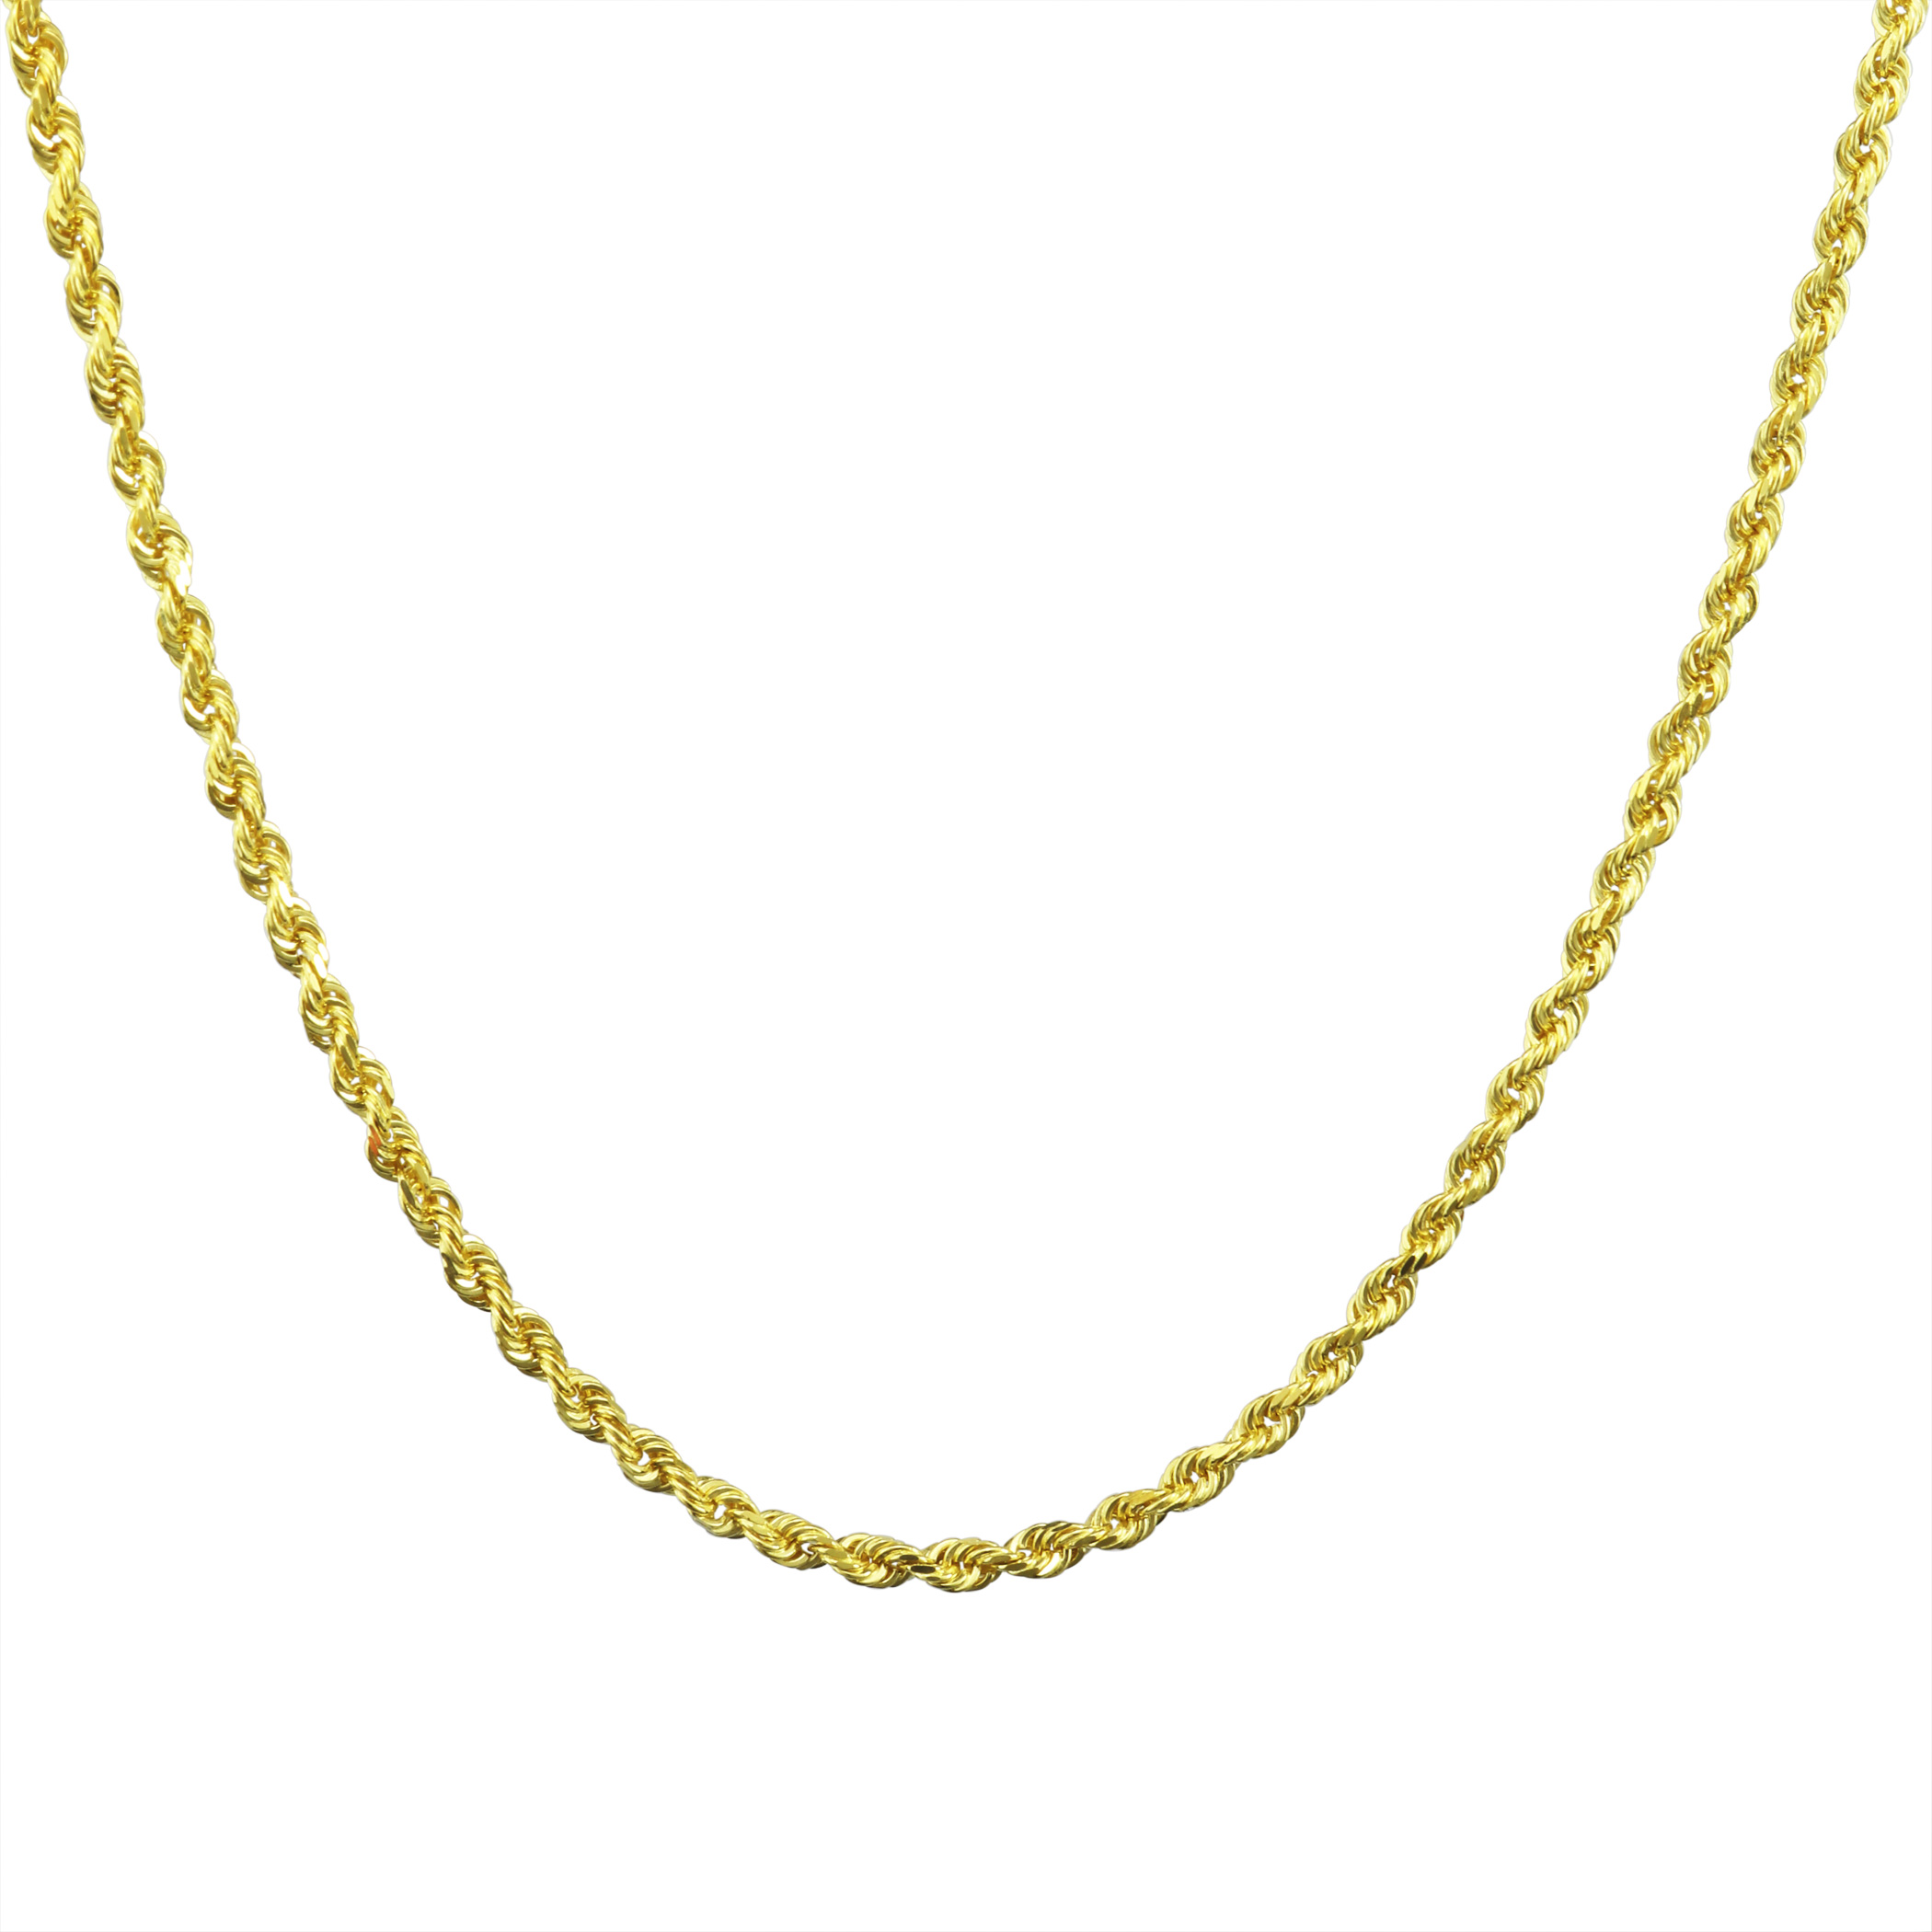 10K-Yellow-Gold-2-5mm-Solid-Rope-Chain-Pendant-Necklace-Lobster-Clasp-16-034-30-034 thumbnail 22